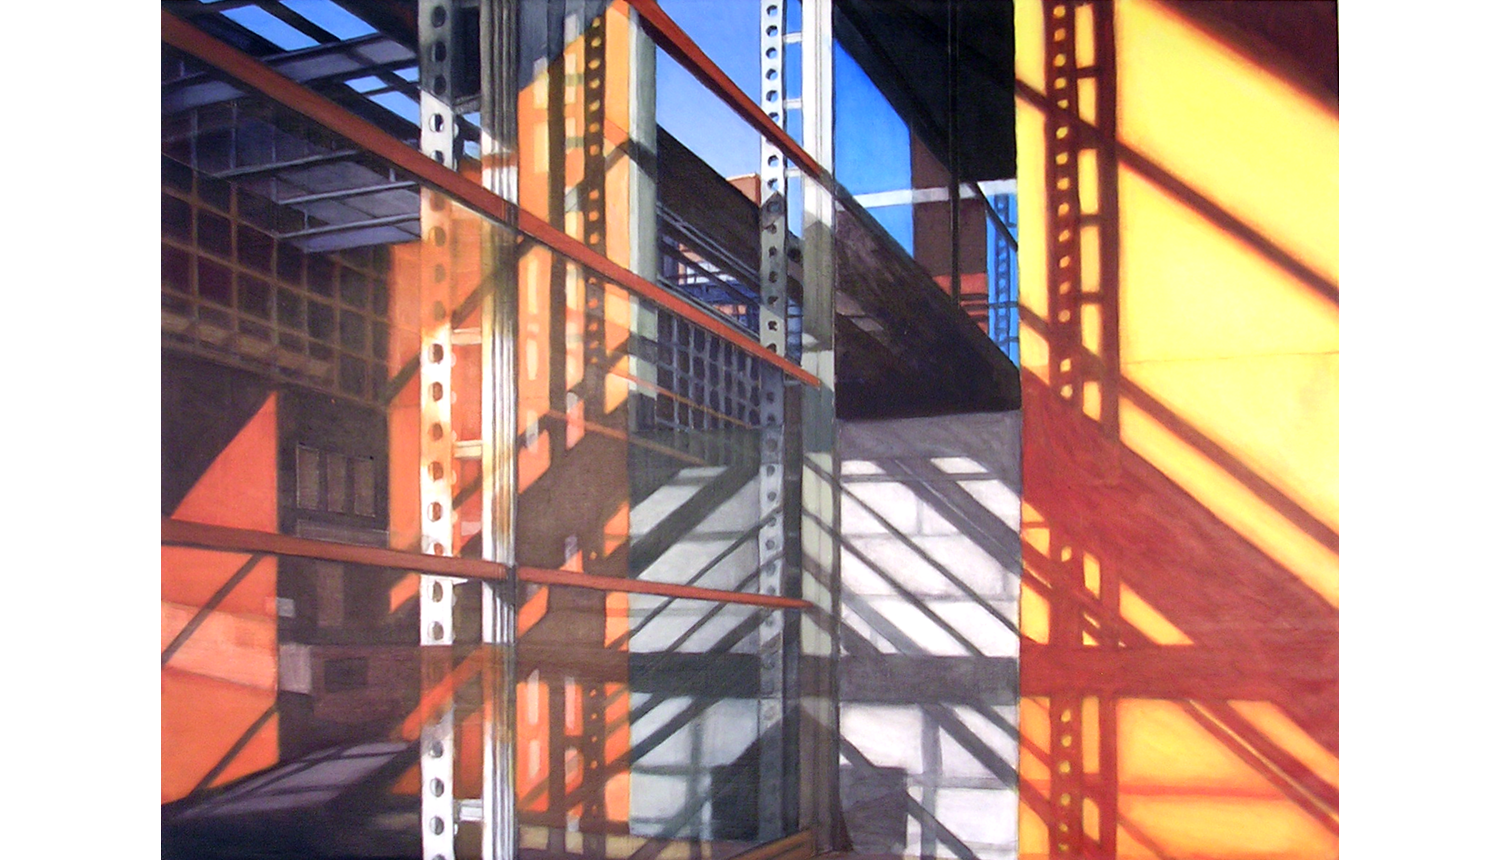 Study for Shadows & Reflections 1 , 2009, Acrylic on linen, 22 x 30""